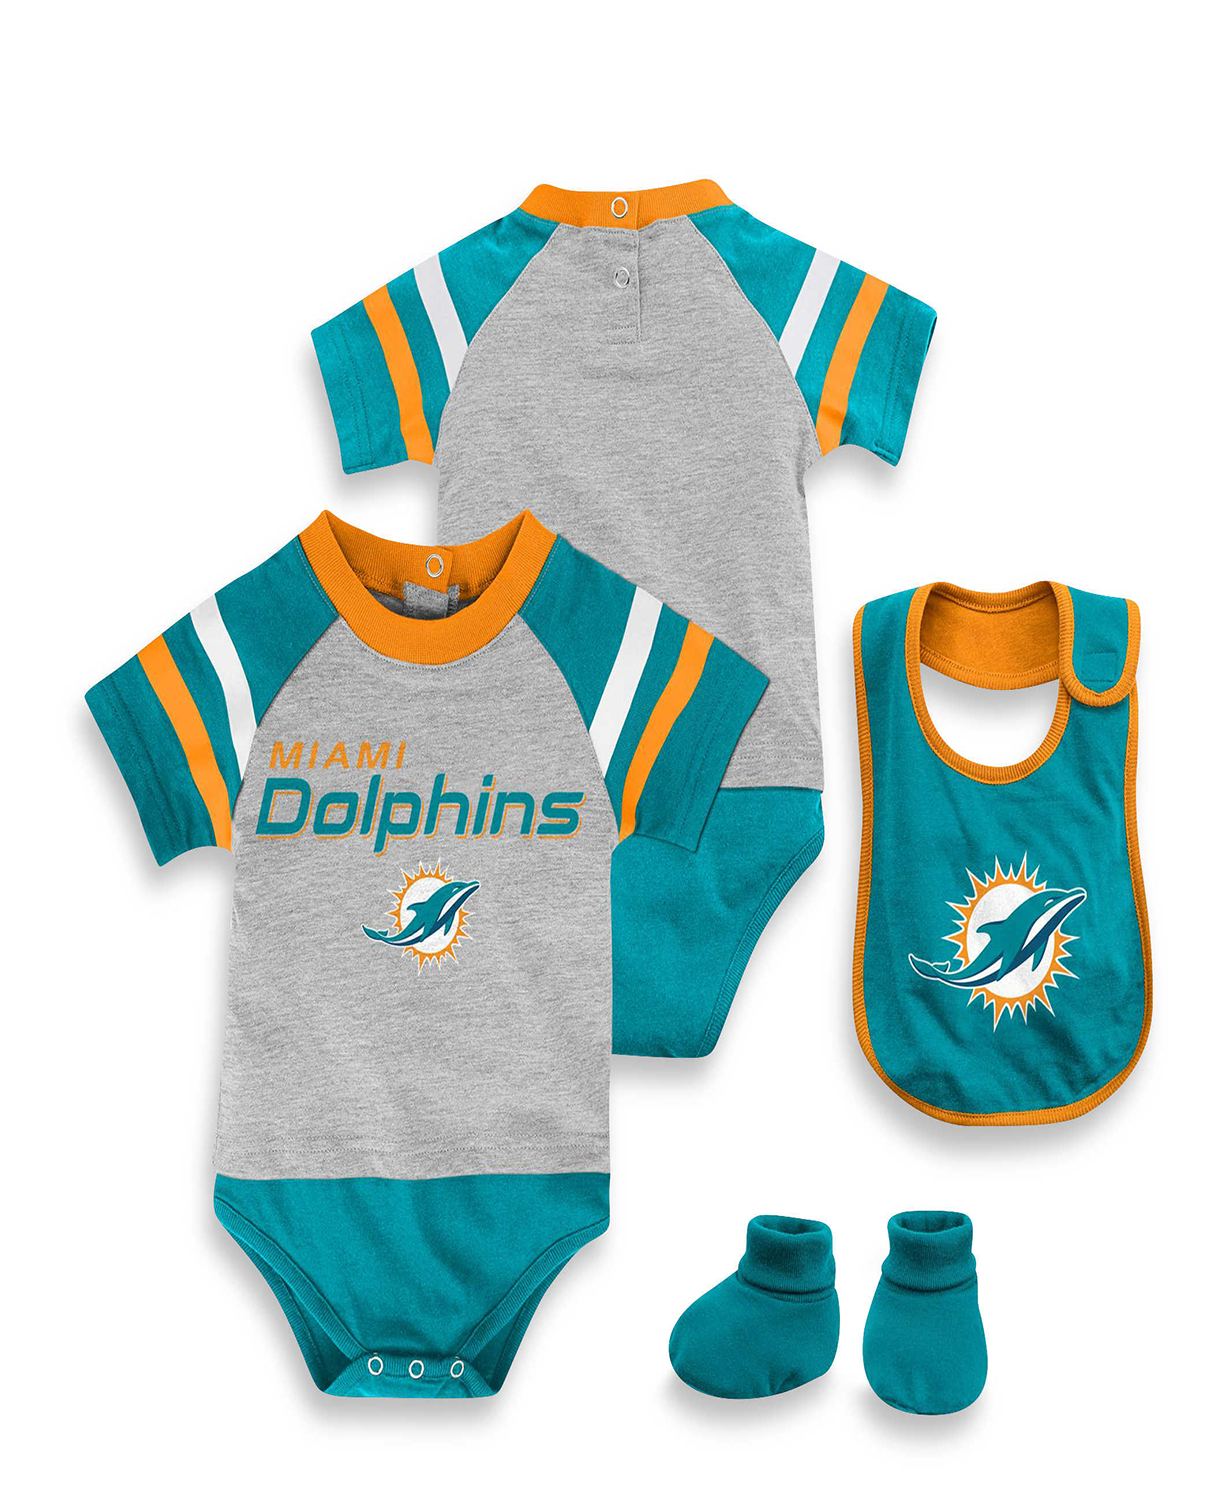 dca070d57 NFL Kids Baby 3 Piece Dolphins Baby Bodysuit Set - Baby Clothes ...